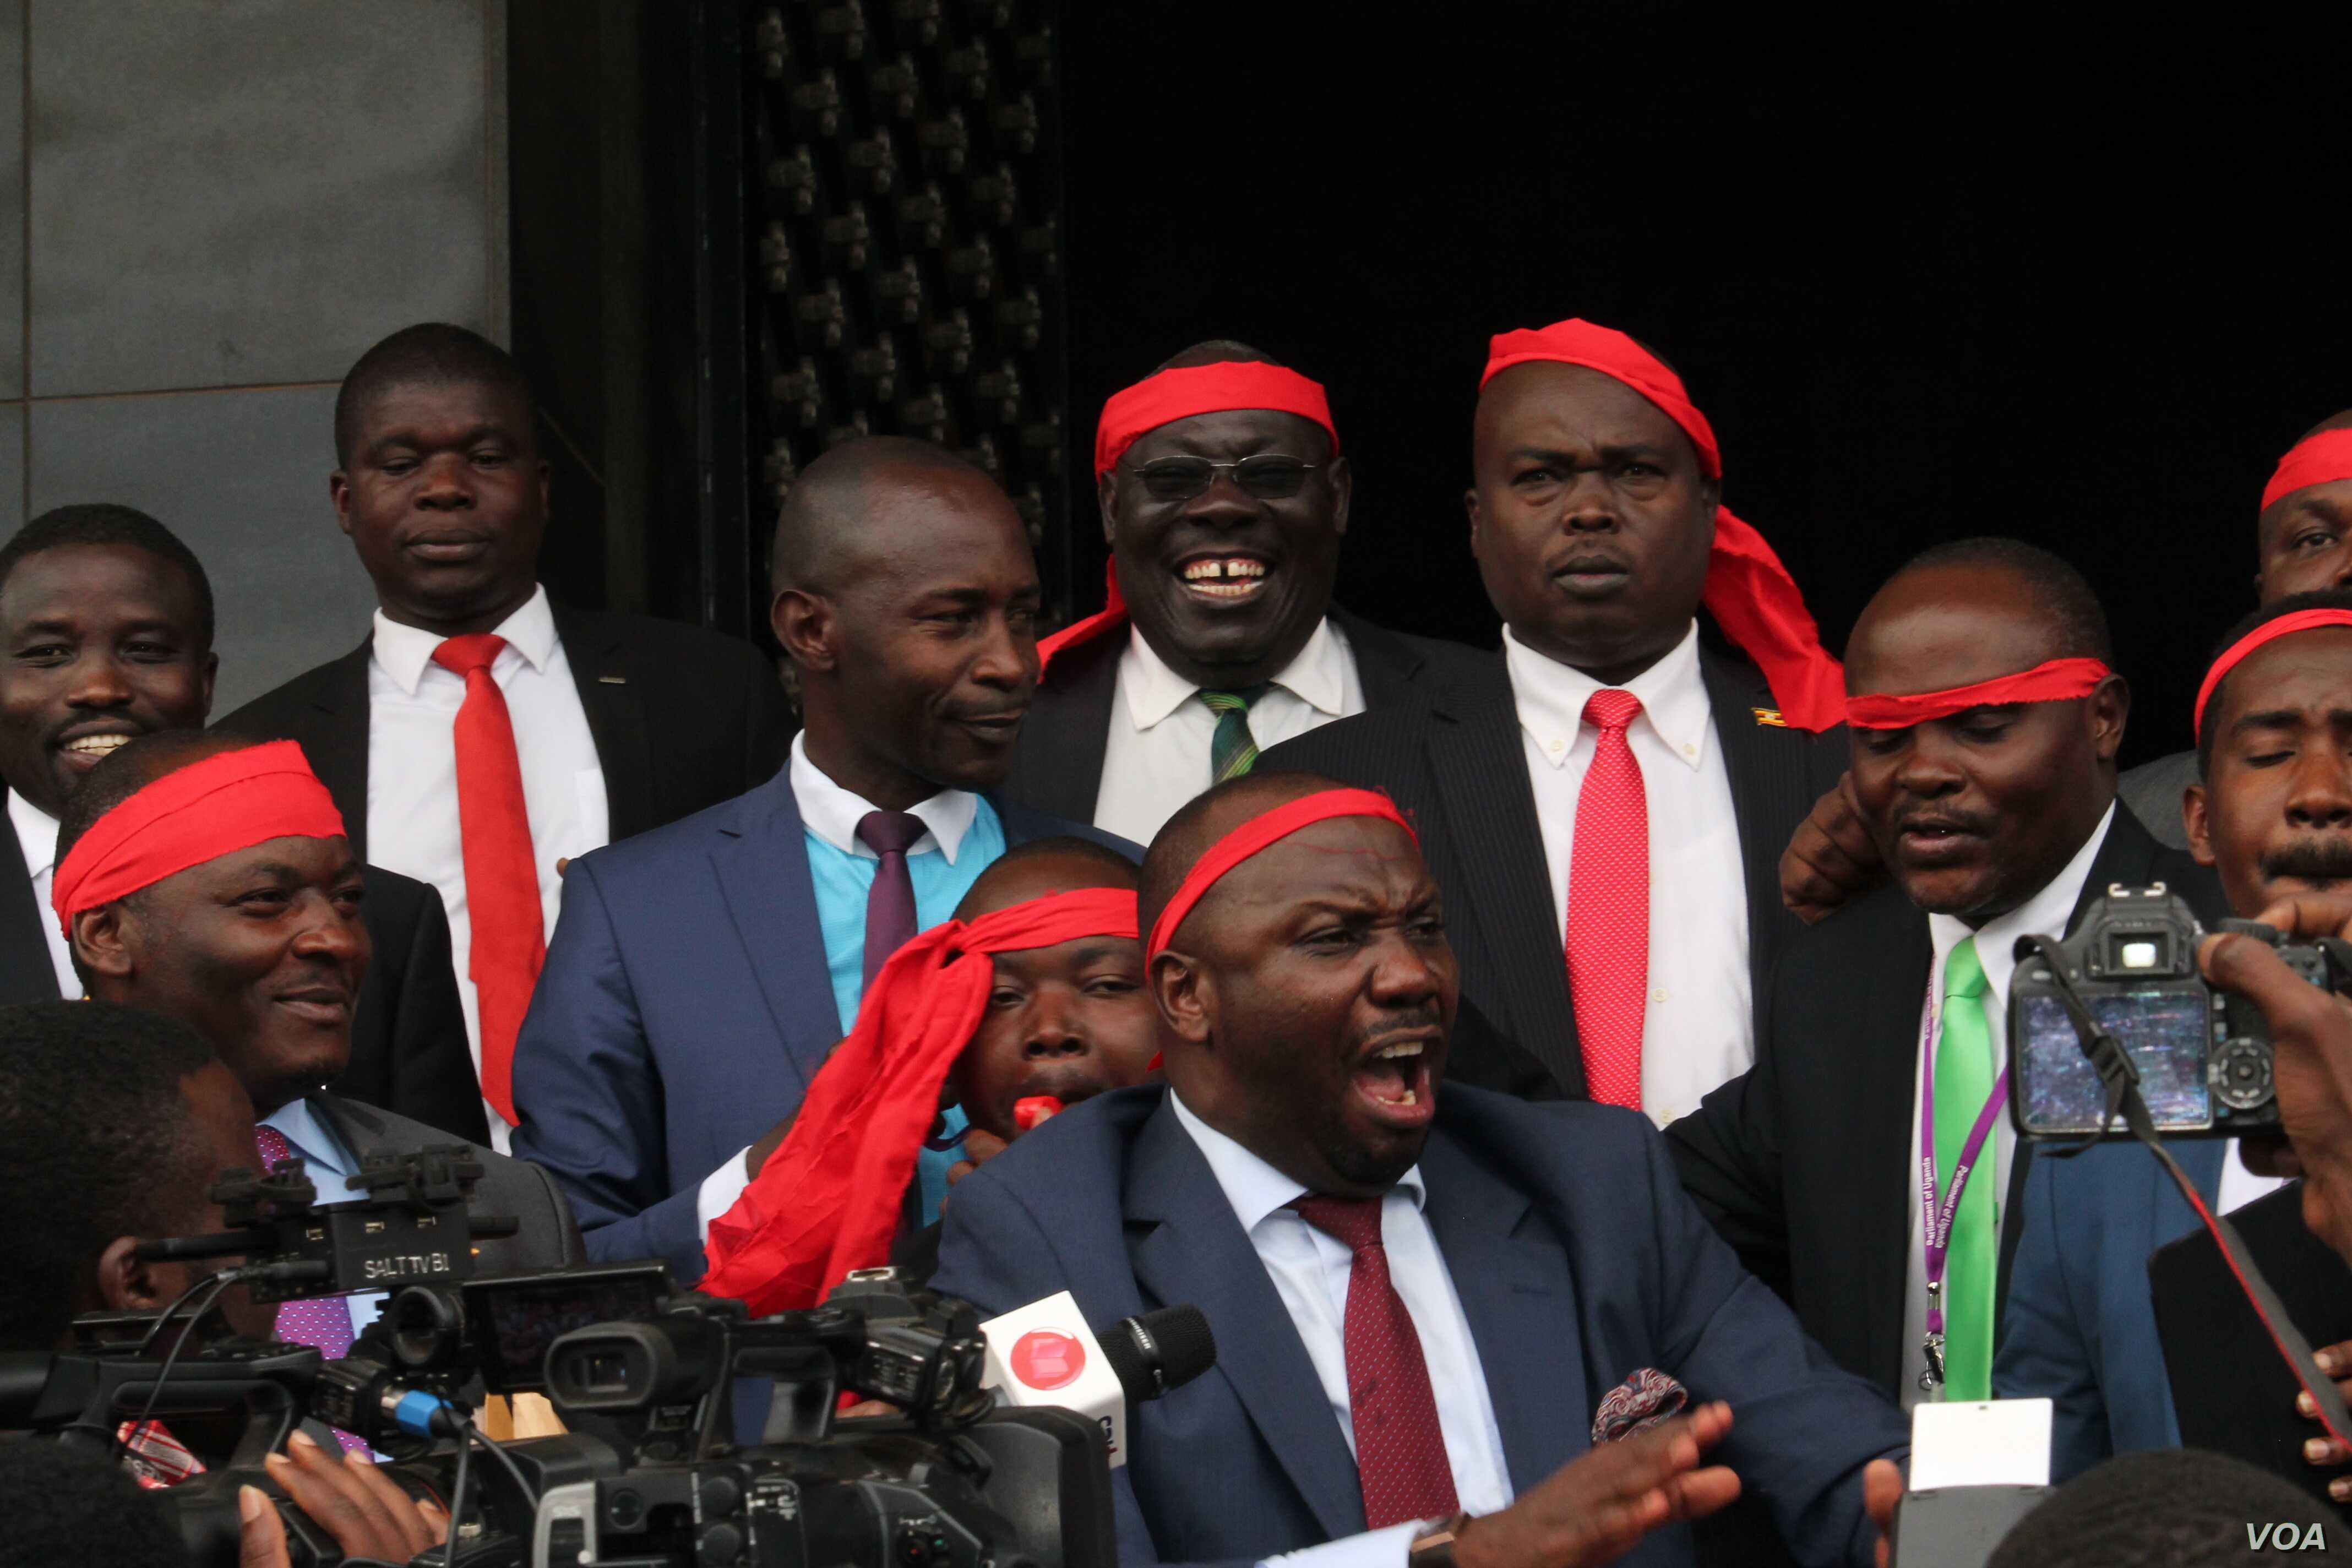 Ugandan opposition legislators sing outside the Parliament building in Kampala, Uganda, Sept. 21, 2017, after a motion to amend the Constitution failed. They left Parliament singing and said every day the Constitution remains untouched is a win.